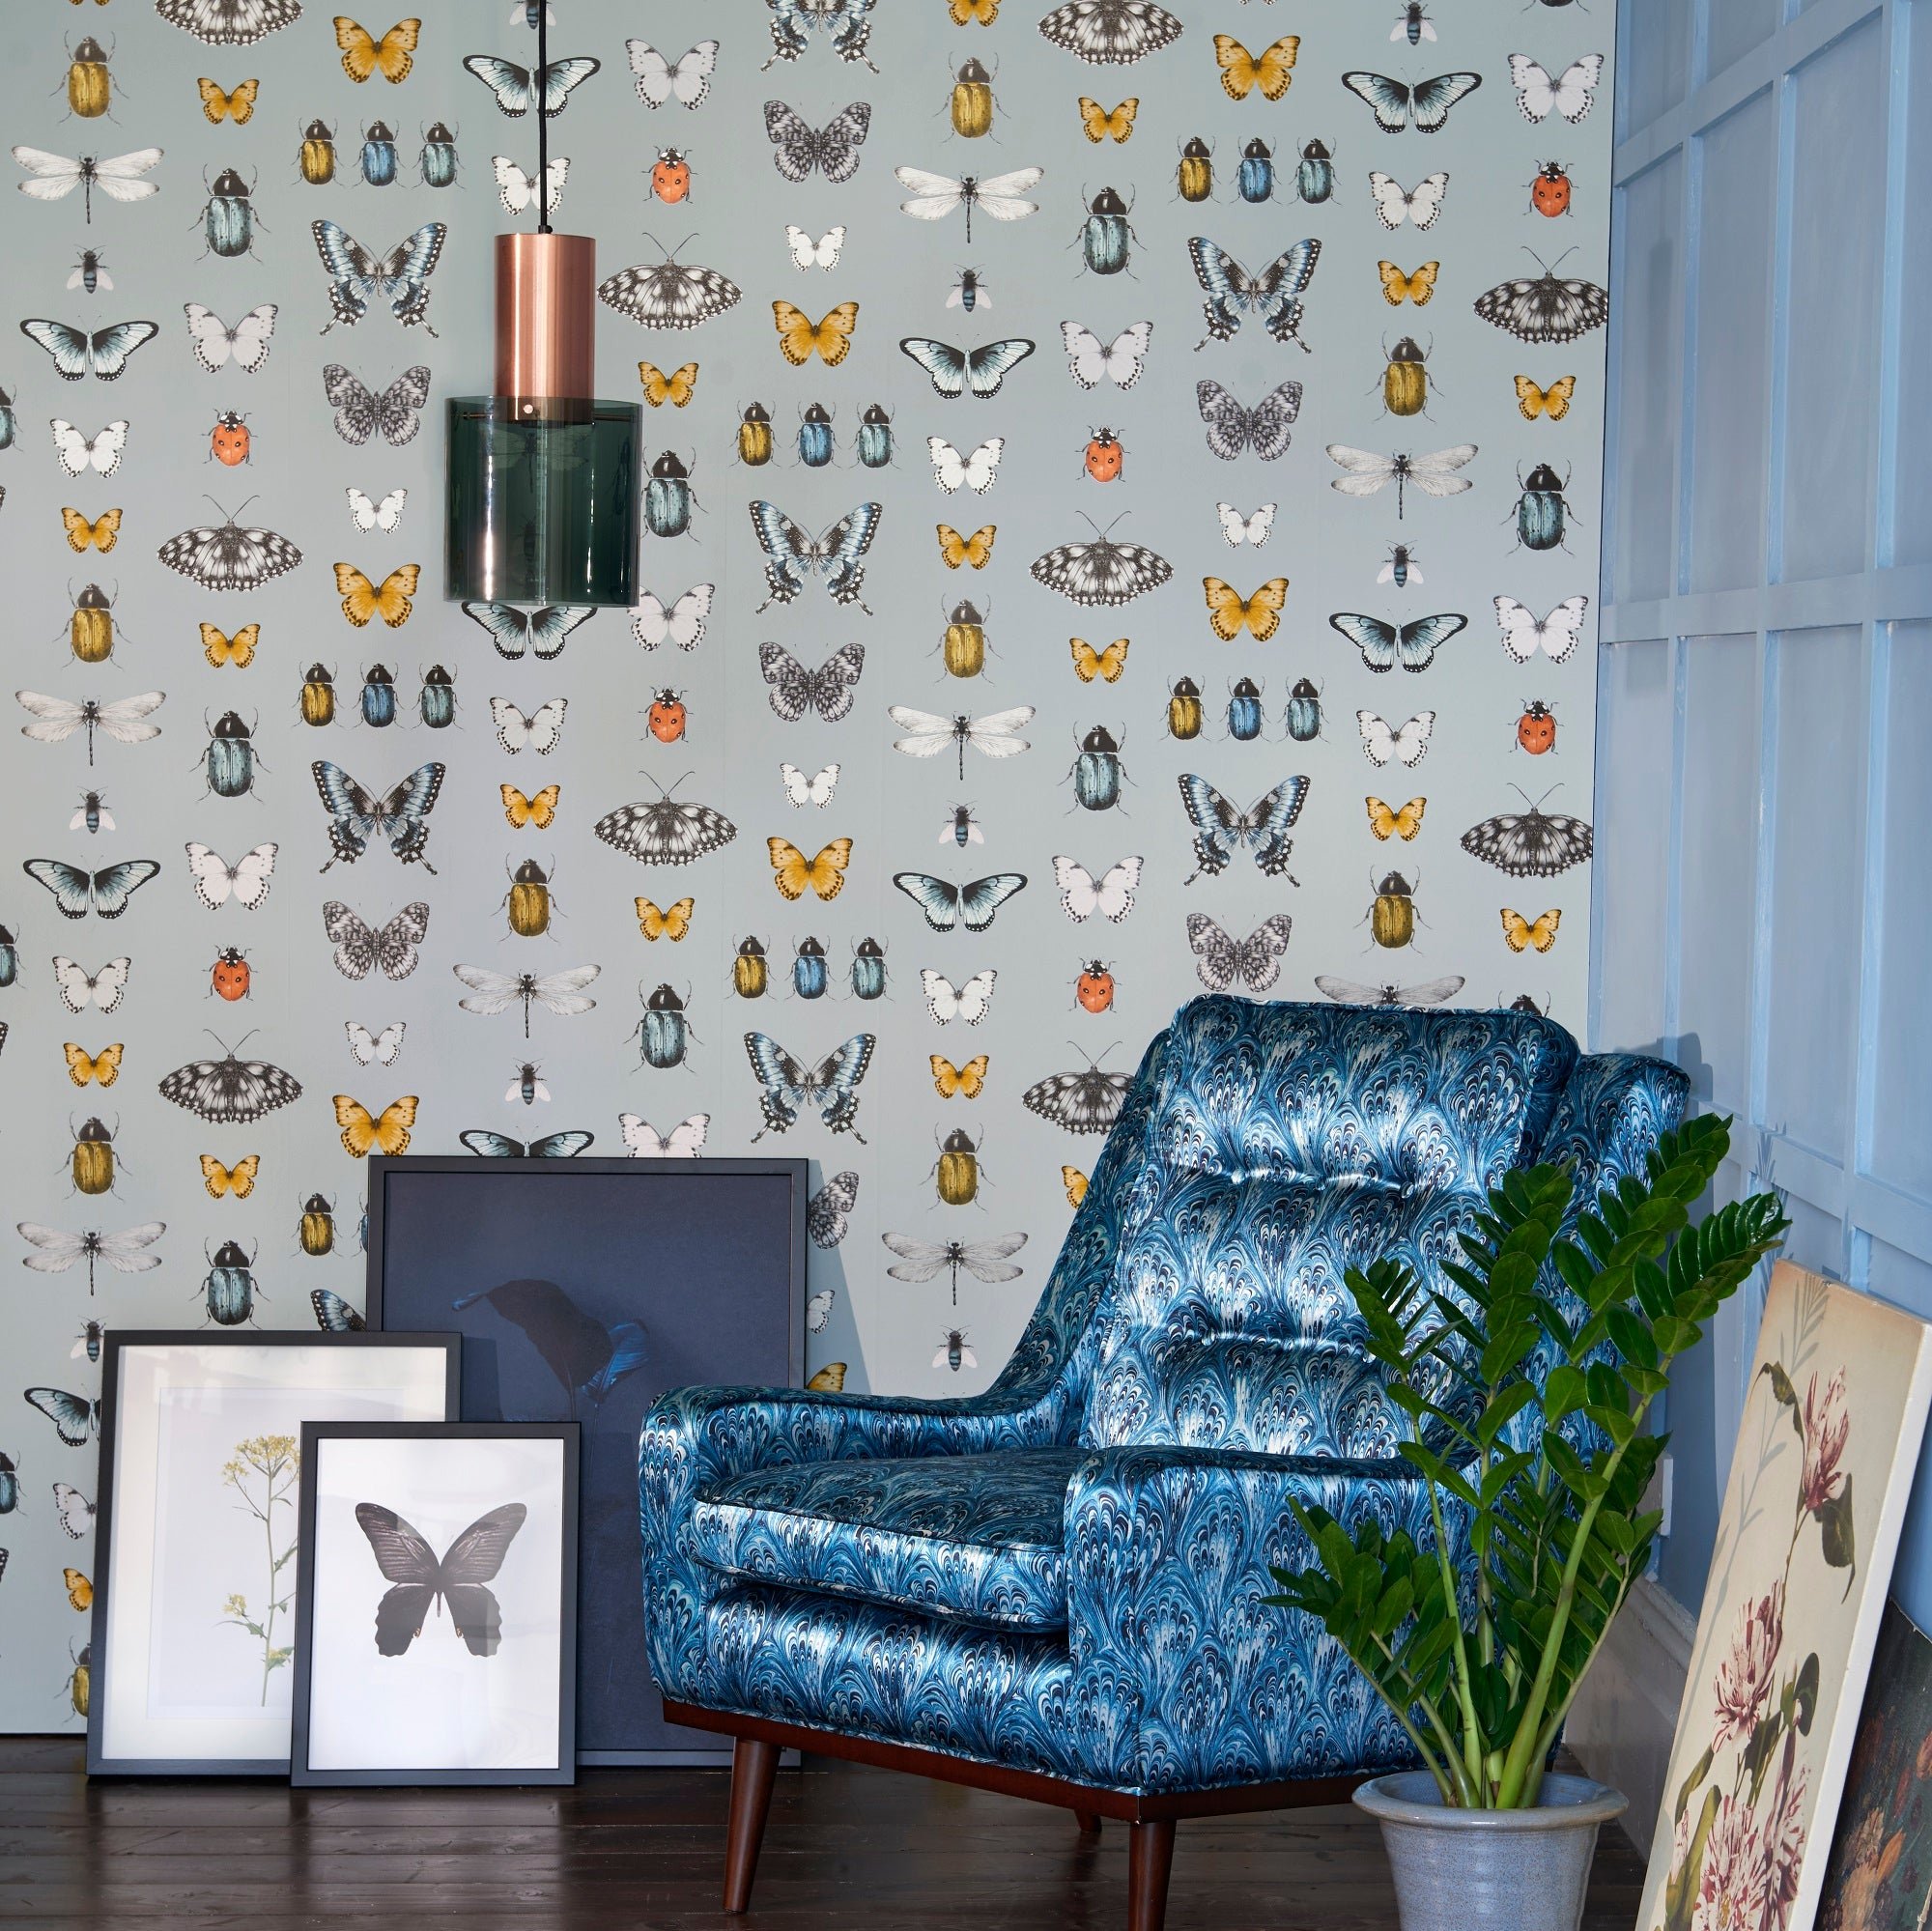 Papilio Traditional Insects & Butterflies  | Designer Motif Wallpaper in Charcoal & Gold